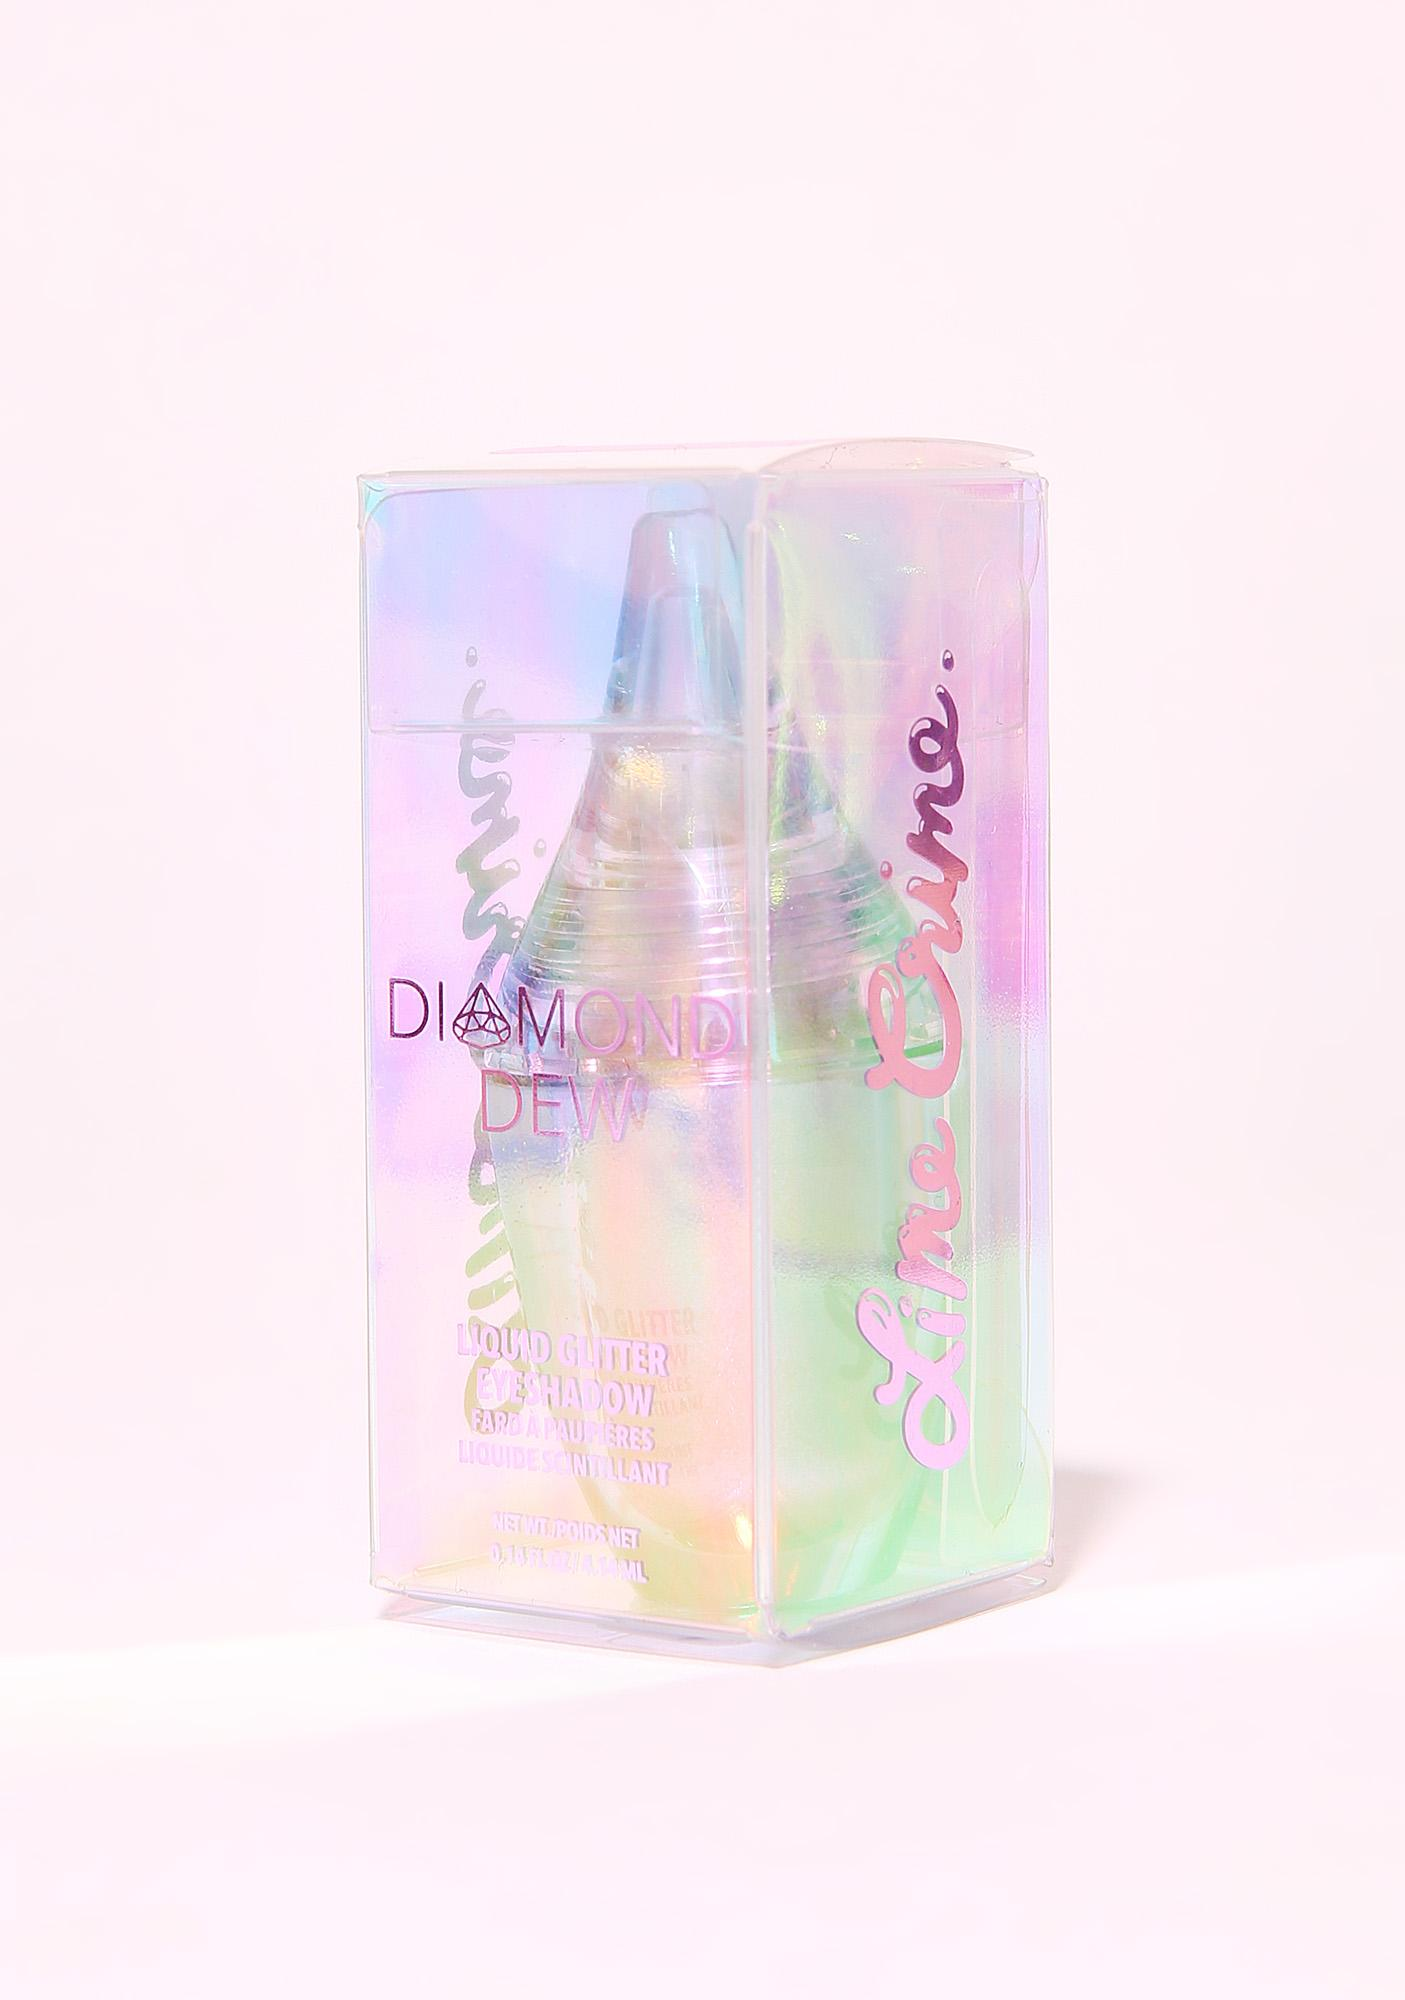 Lime Crime Aurora Diamond Dew